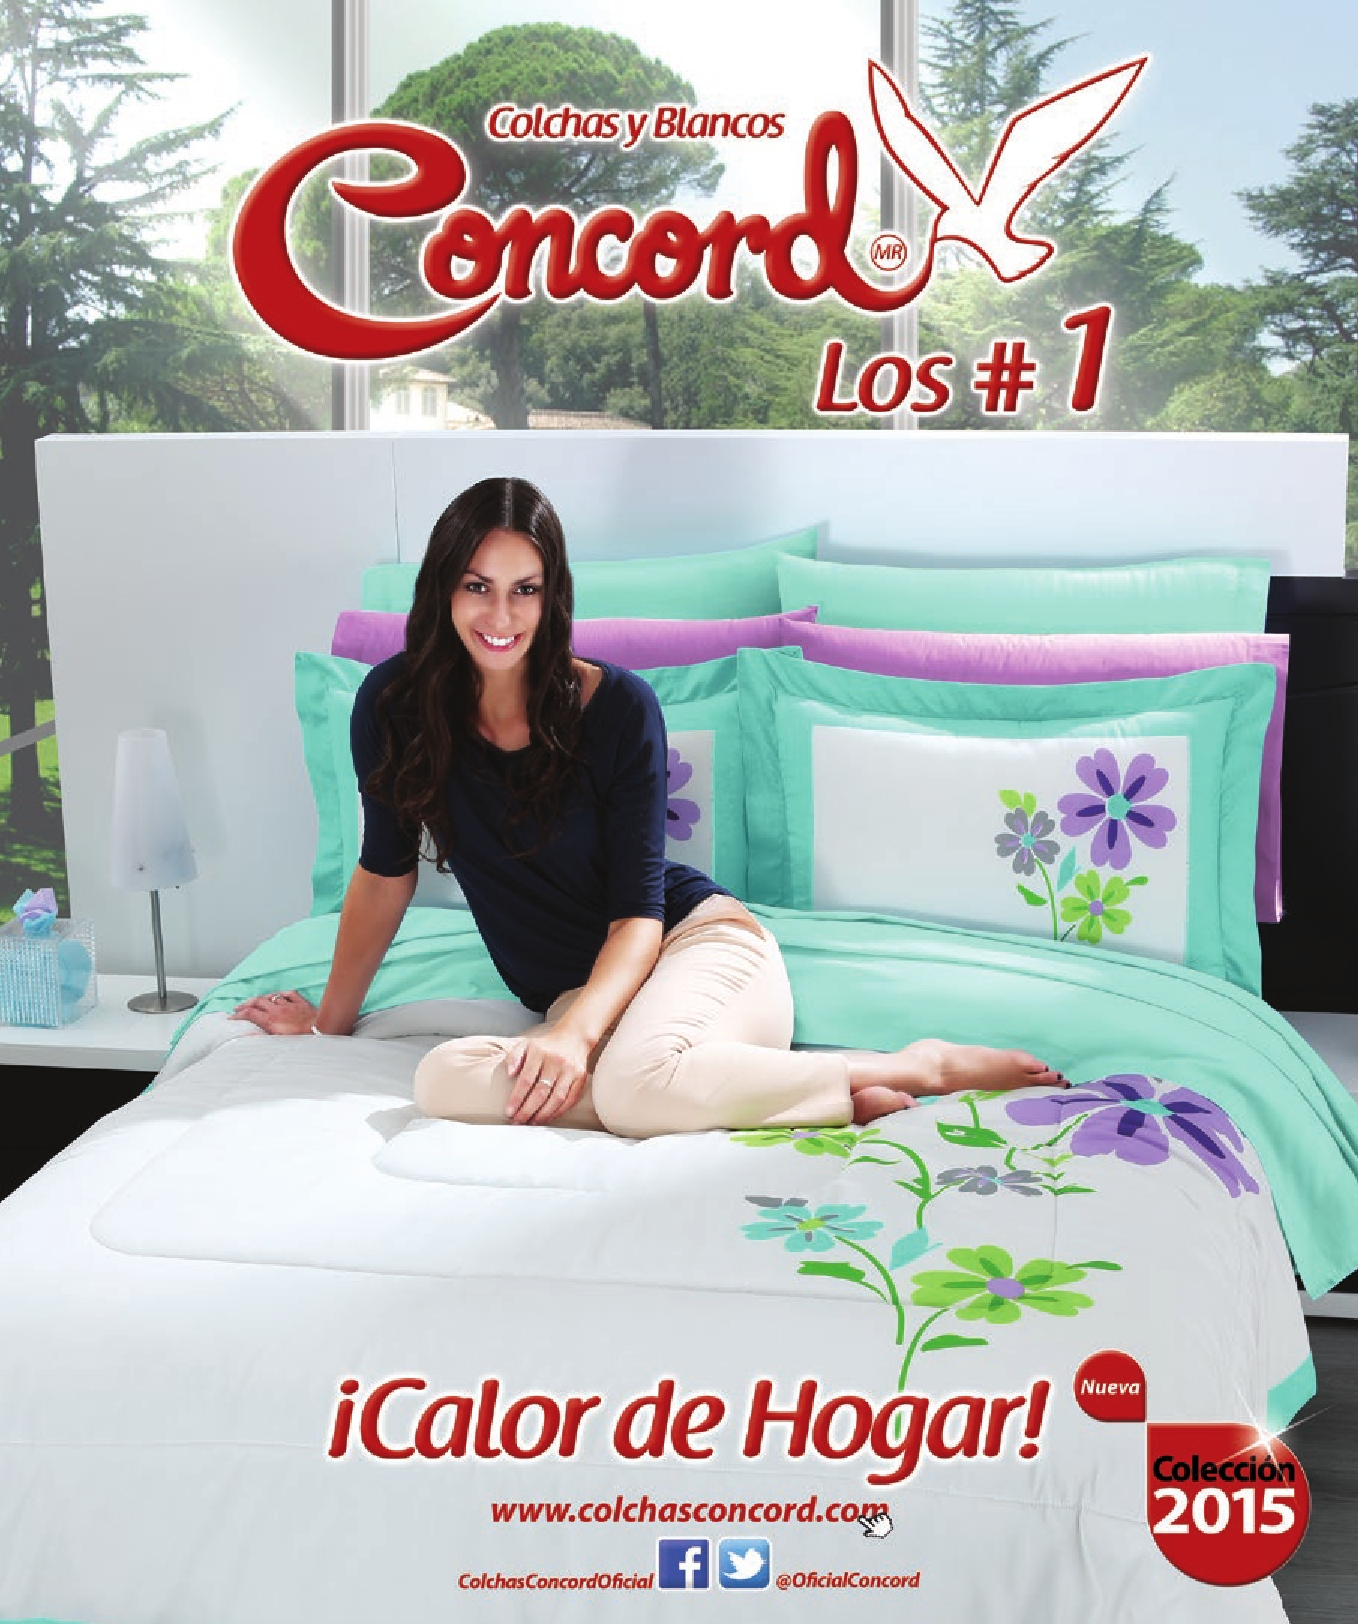 catalogo confort edredones